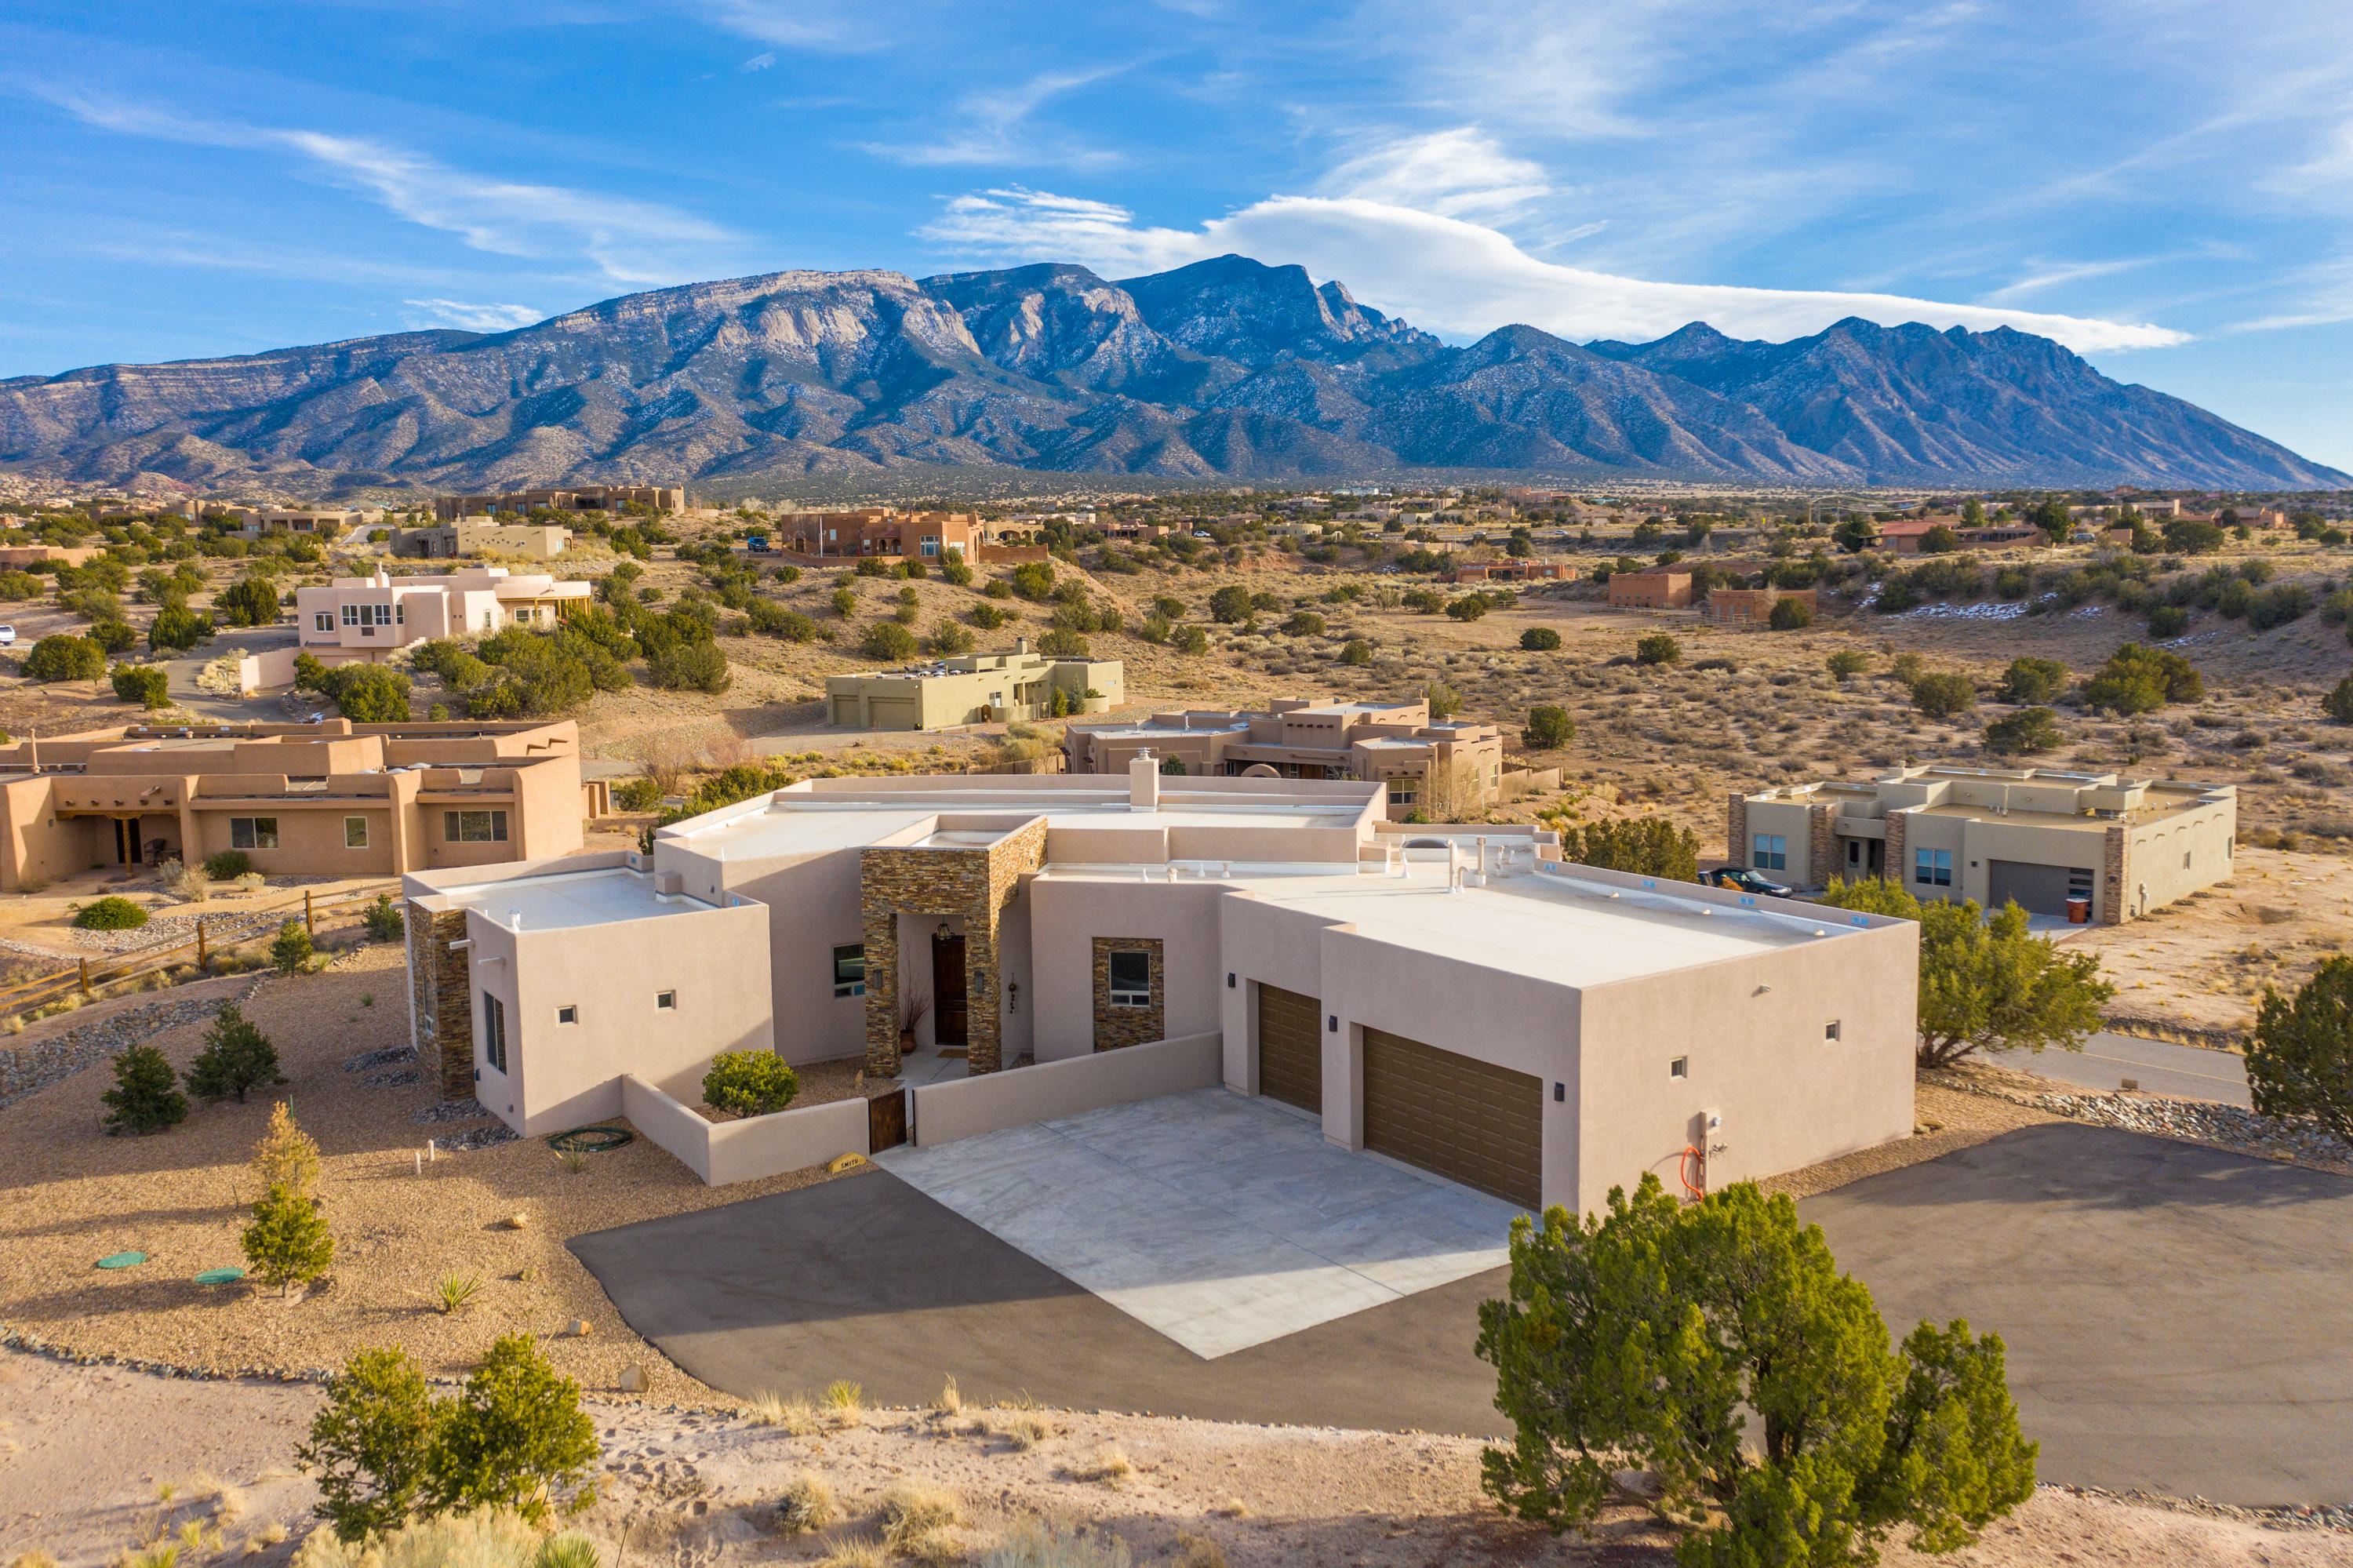 This single level custom home, located in the desirable Anasazi Meadows subdivision, showcases the incredible views of the Sandia Mountains! Great room concept with open kitchen, featuring: granite counters and island with breakfast bar, custom backsplash, GE Cafe appliances and large pantry. Completed in 2020, the custom amenities include: unique light fixtures, gas log fireplace, porcelain wood-look tile, solid wood doors, security system, Dreamweaver Reflections III carpet in the bedrooms & high end polyaspartic garage floors . The master suite has a large walk in closet with built-ins, and the spa-like en-suite bath features a dual vanity, large freestanding soaker tub and separate shower w/ dual entrances  Please click ''More'' for additional information about this incredible home . .